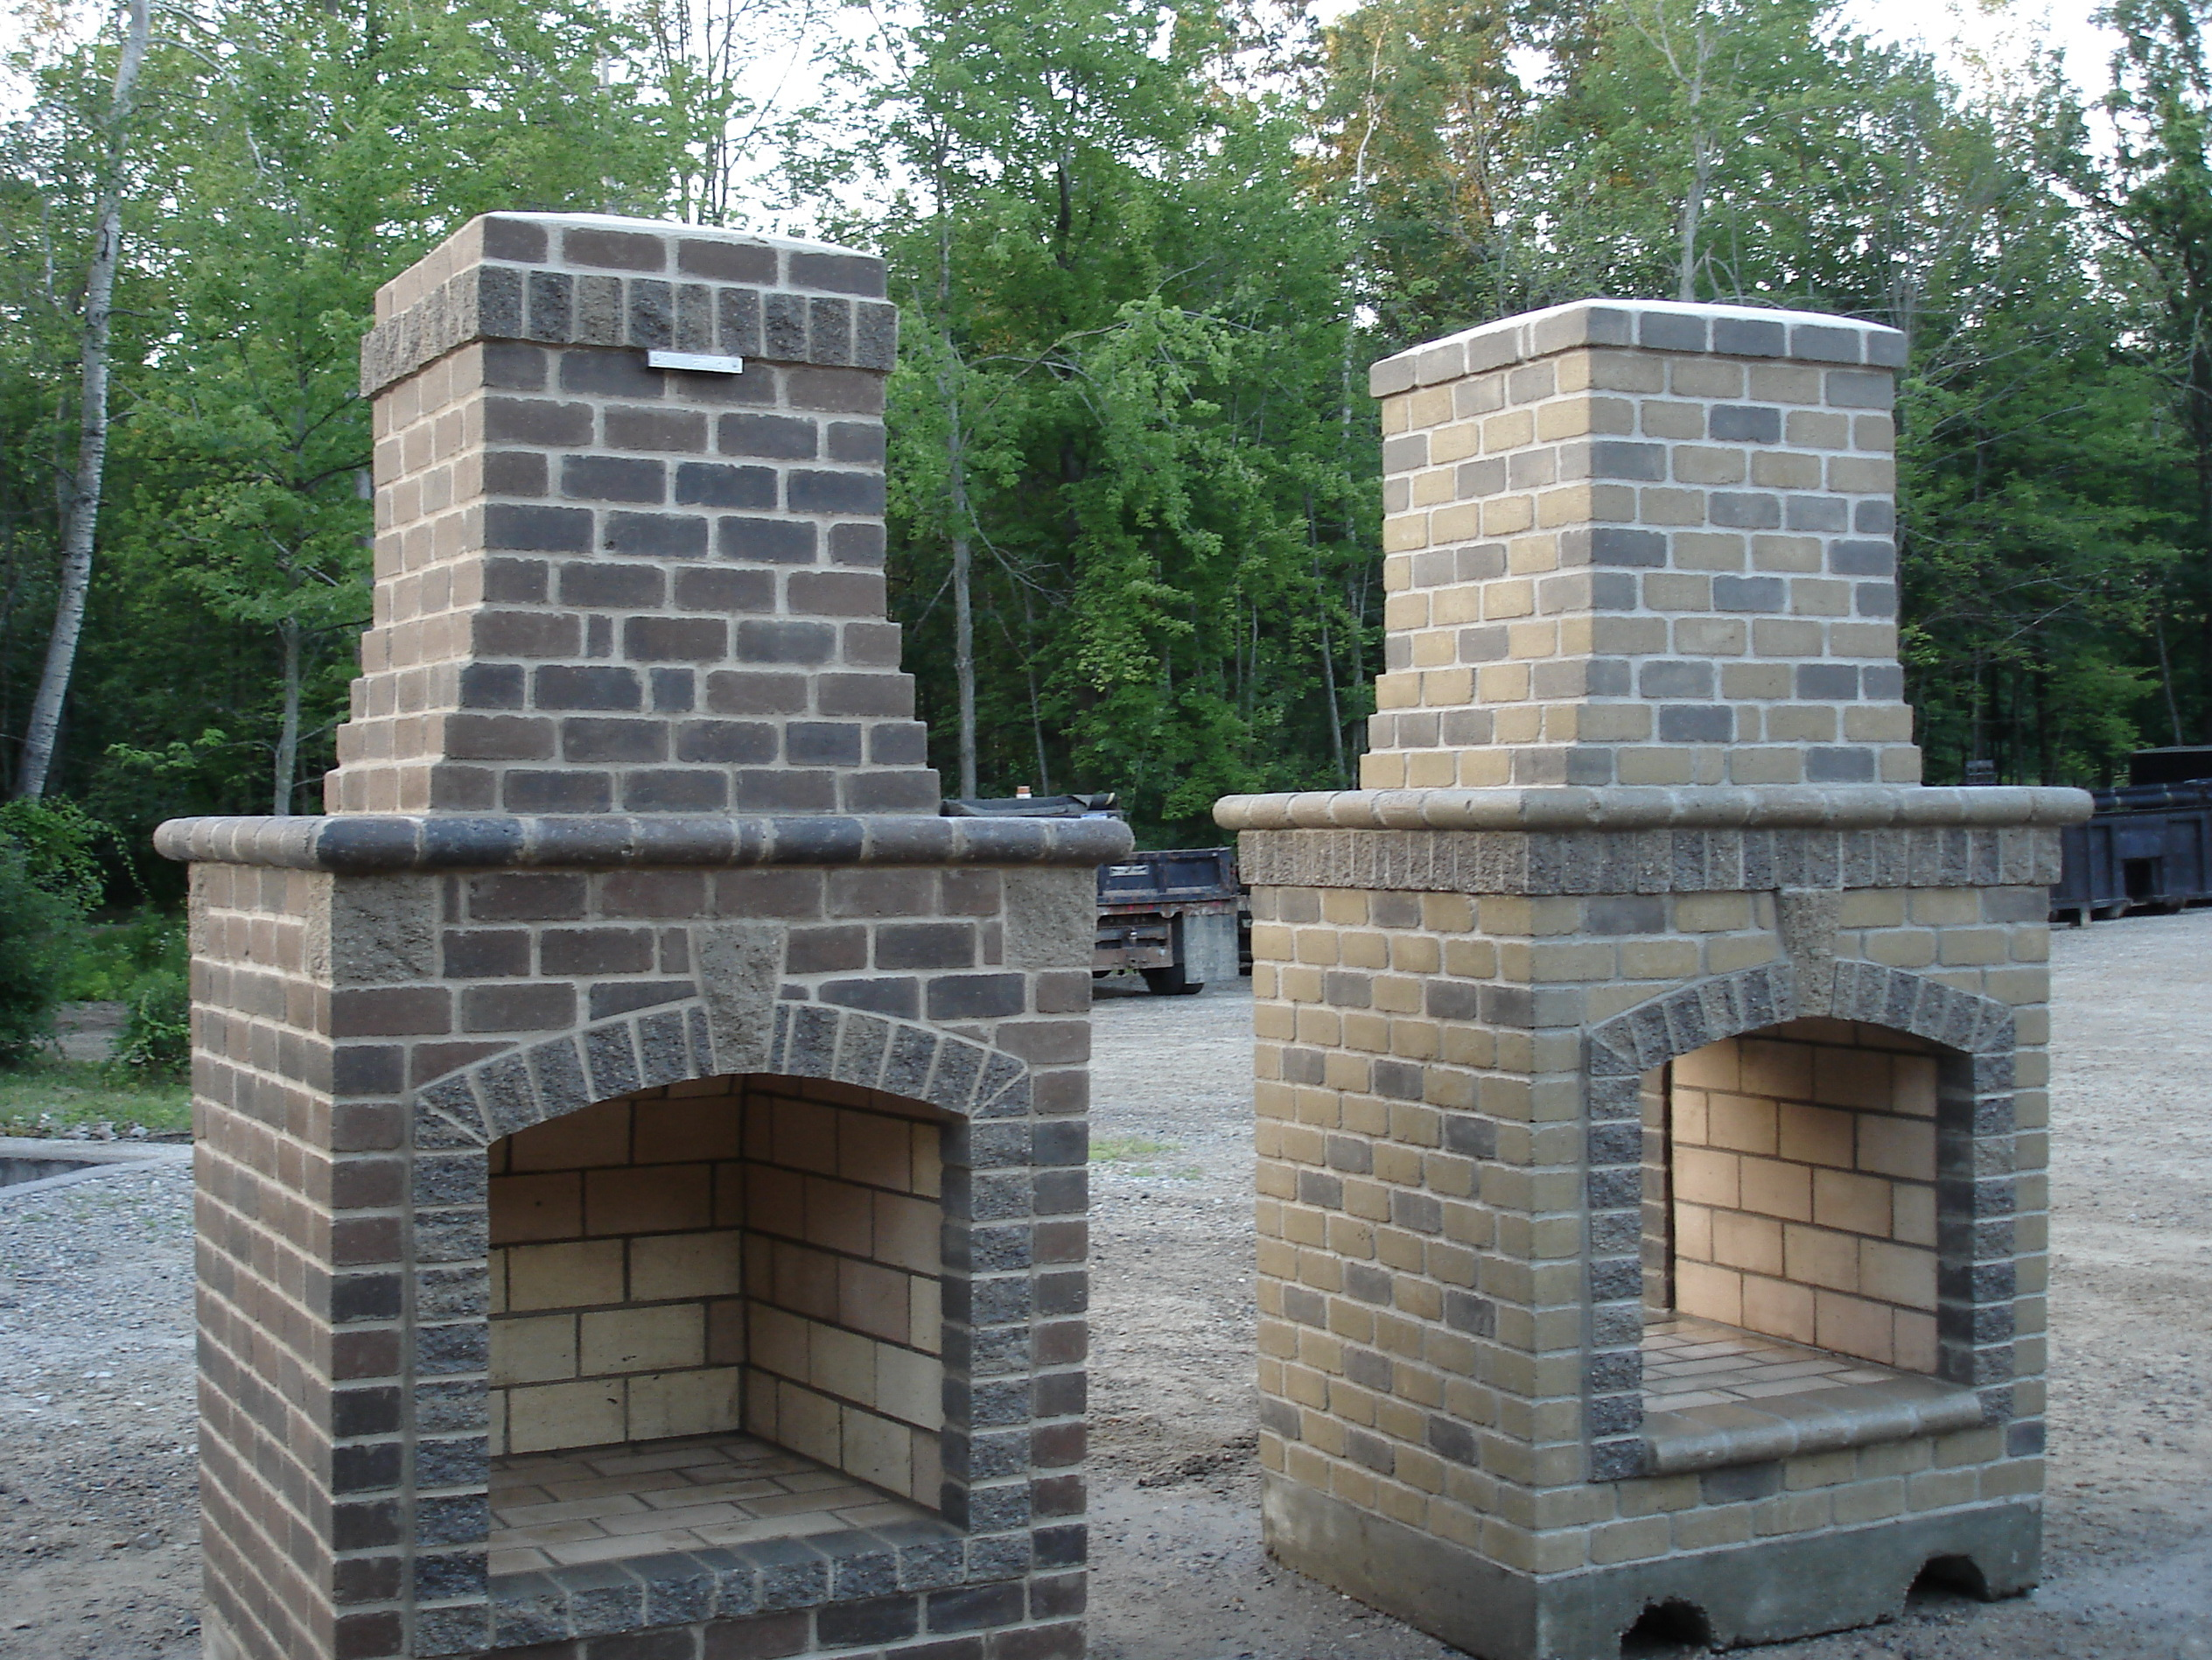 Make Your Own Outdoor Fireplace Build Outdoor Fireplace Plans Home Design Ideas